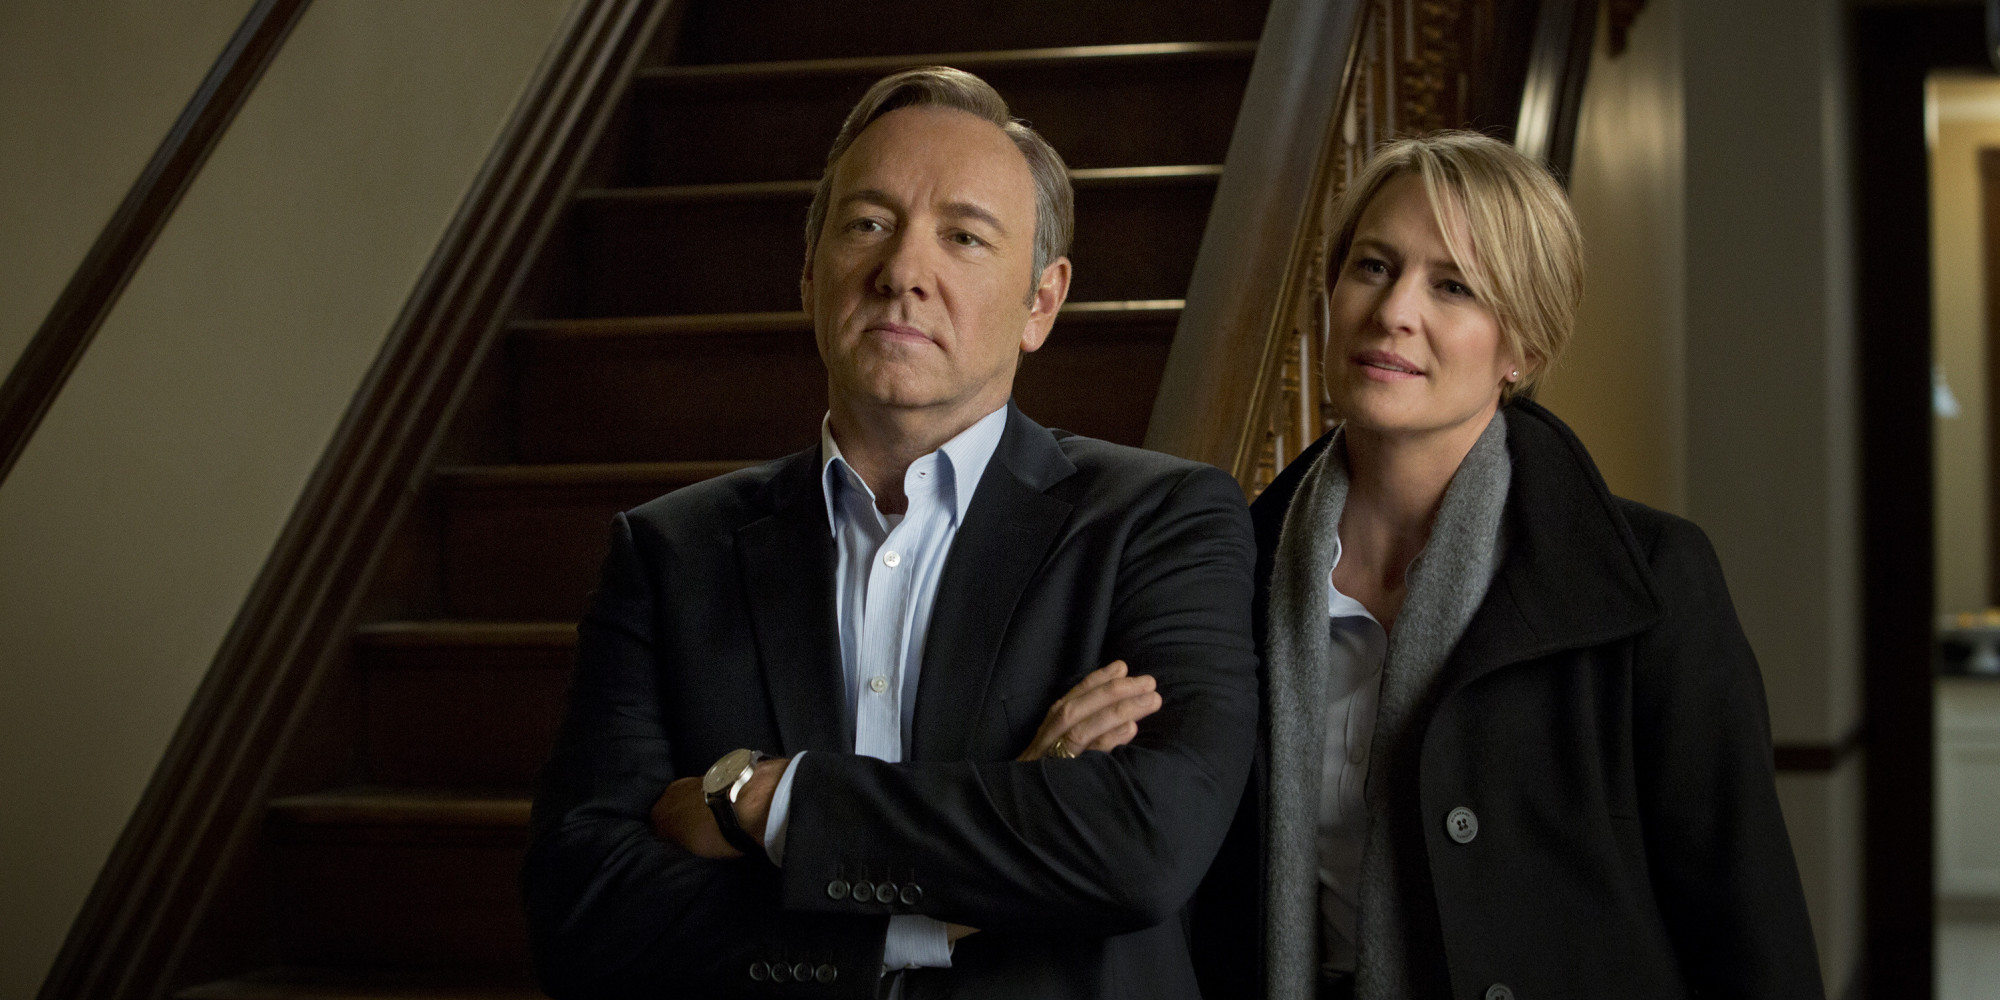 House of Cards, 2014